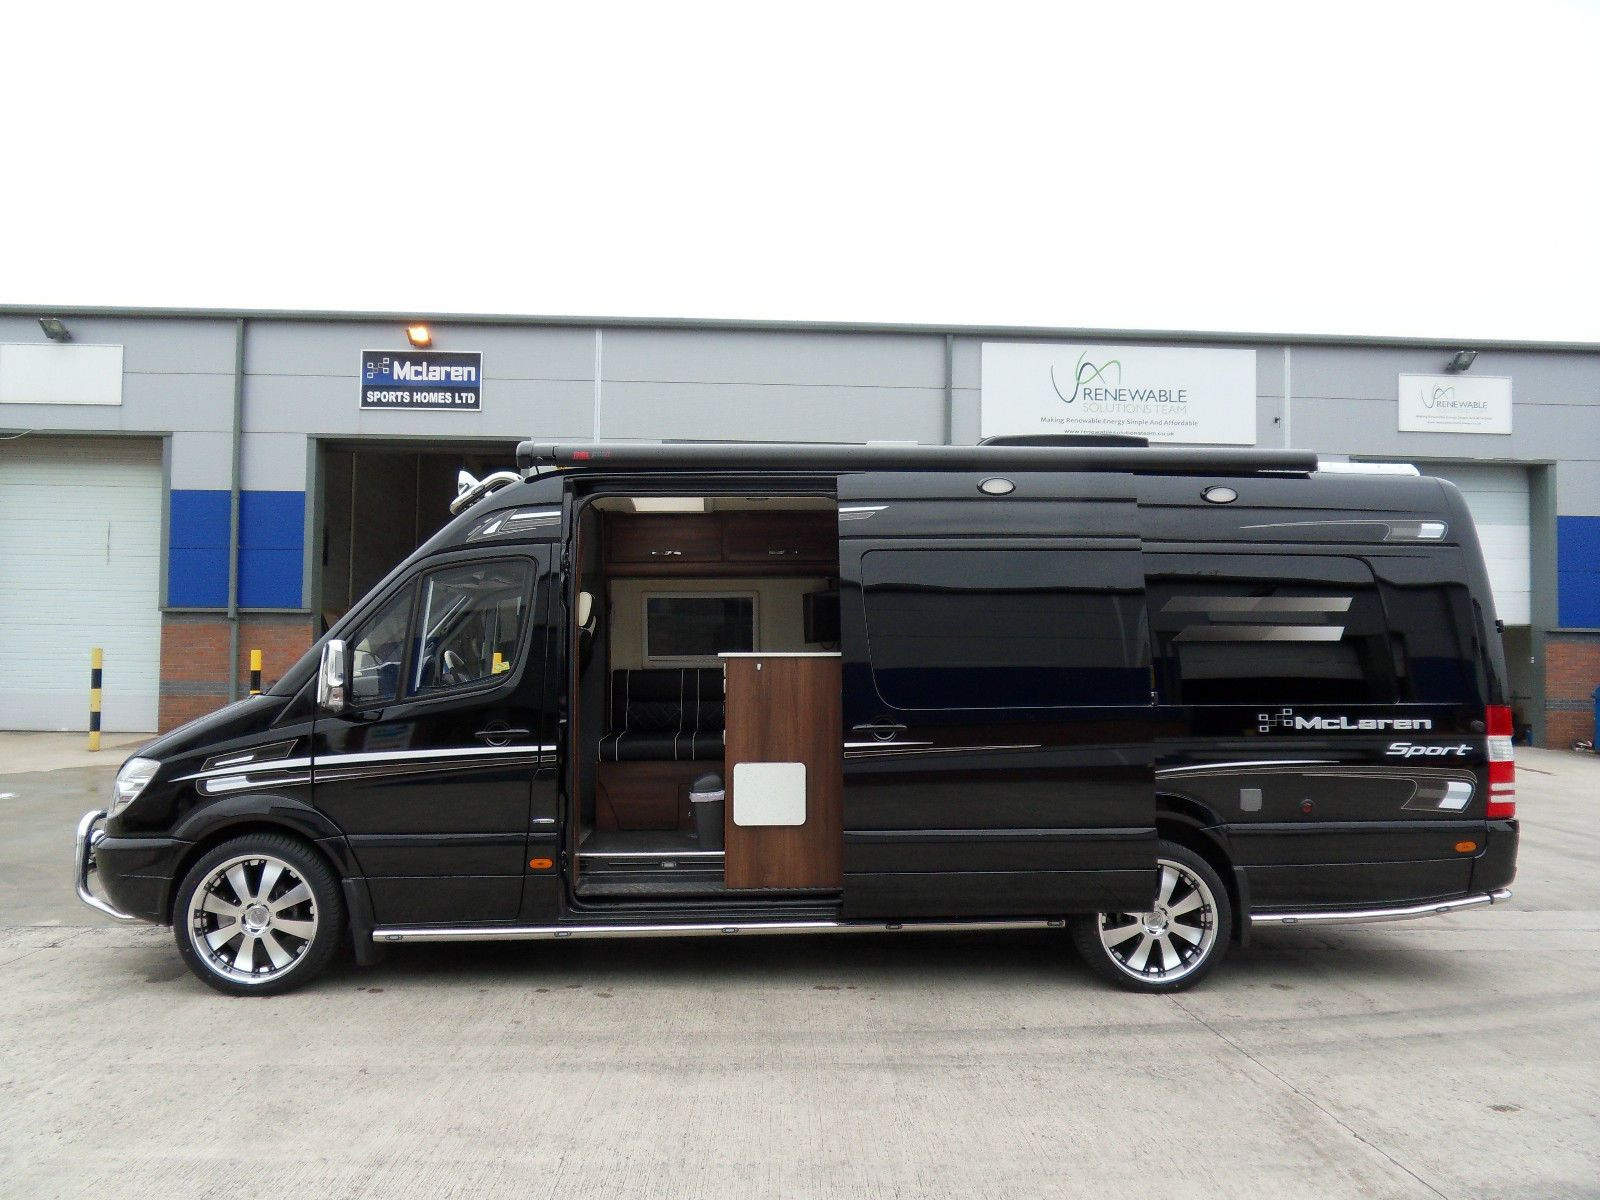 Mclaren sporthome race van mercedes sprinter vw crafter for Mercedes benz sprinter conversion van for sale